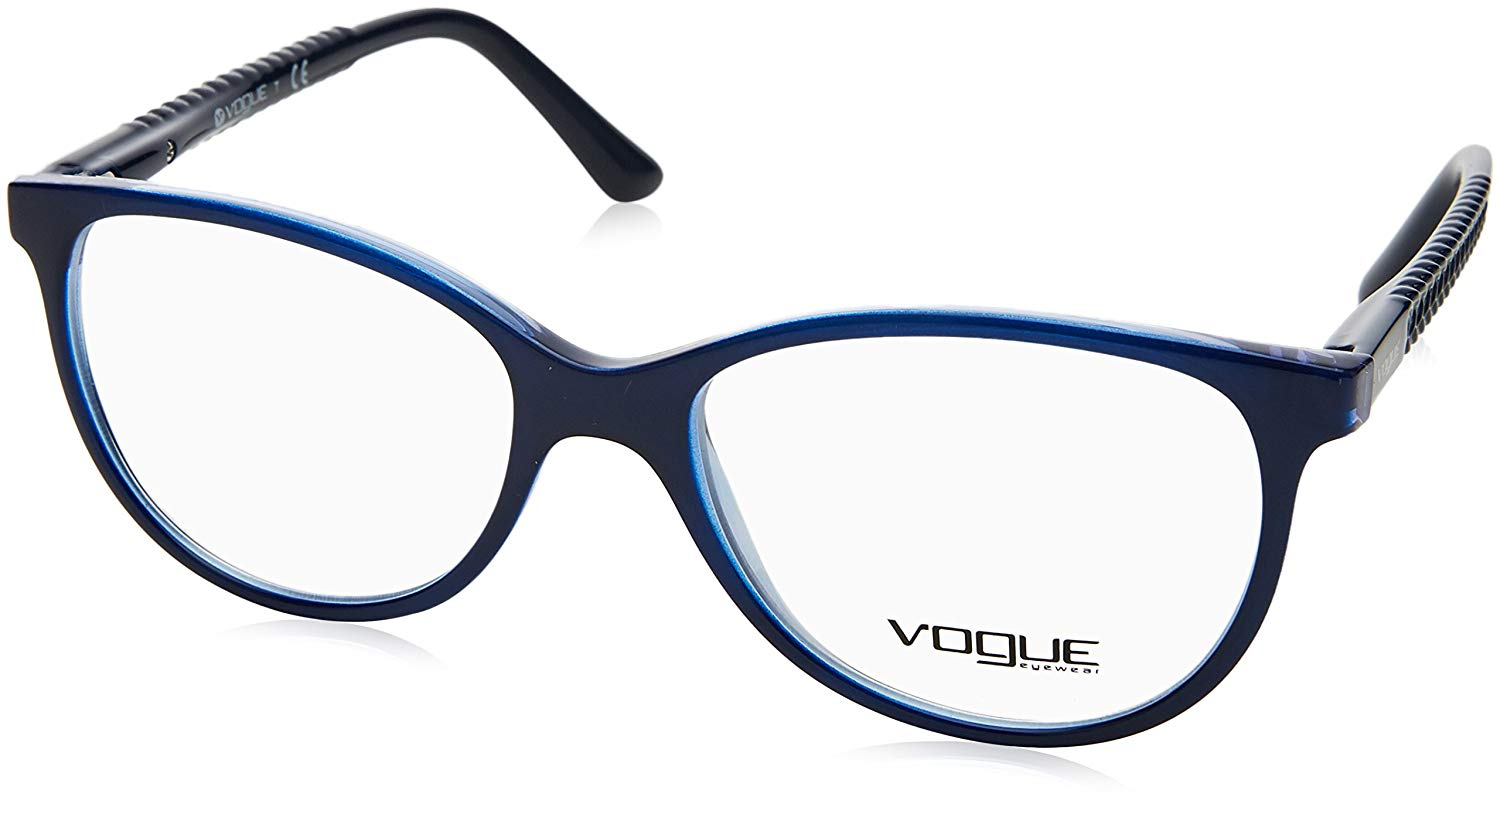 d1e74ee6eff Get Quotations · Vogue VO5030 Eyeglass Frames 2384-51 - Top Dark  Blue violet Transp